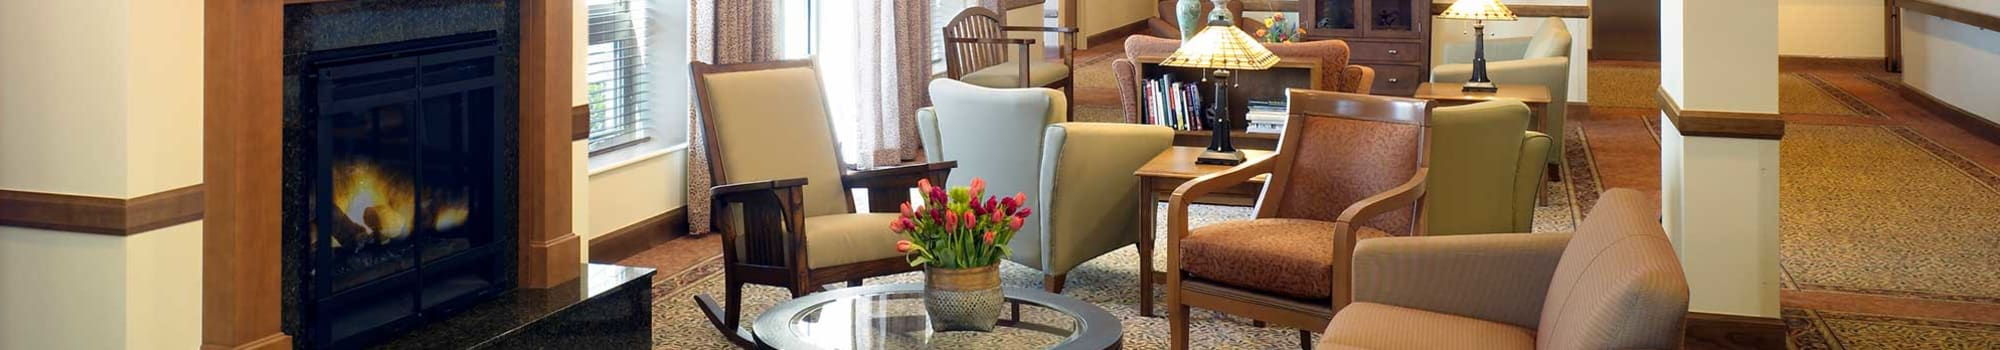 Assisted living in Effingham, IL